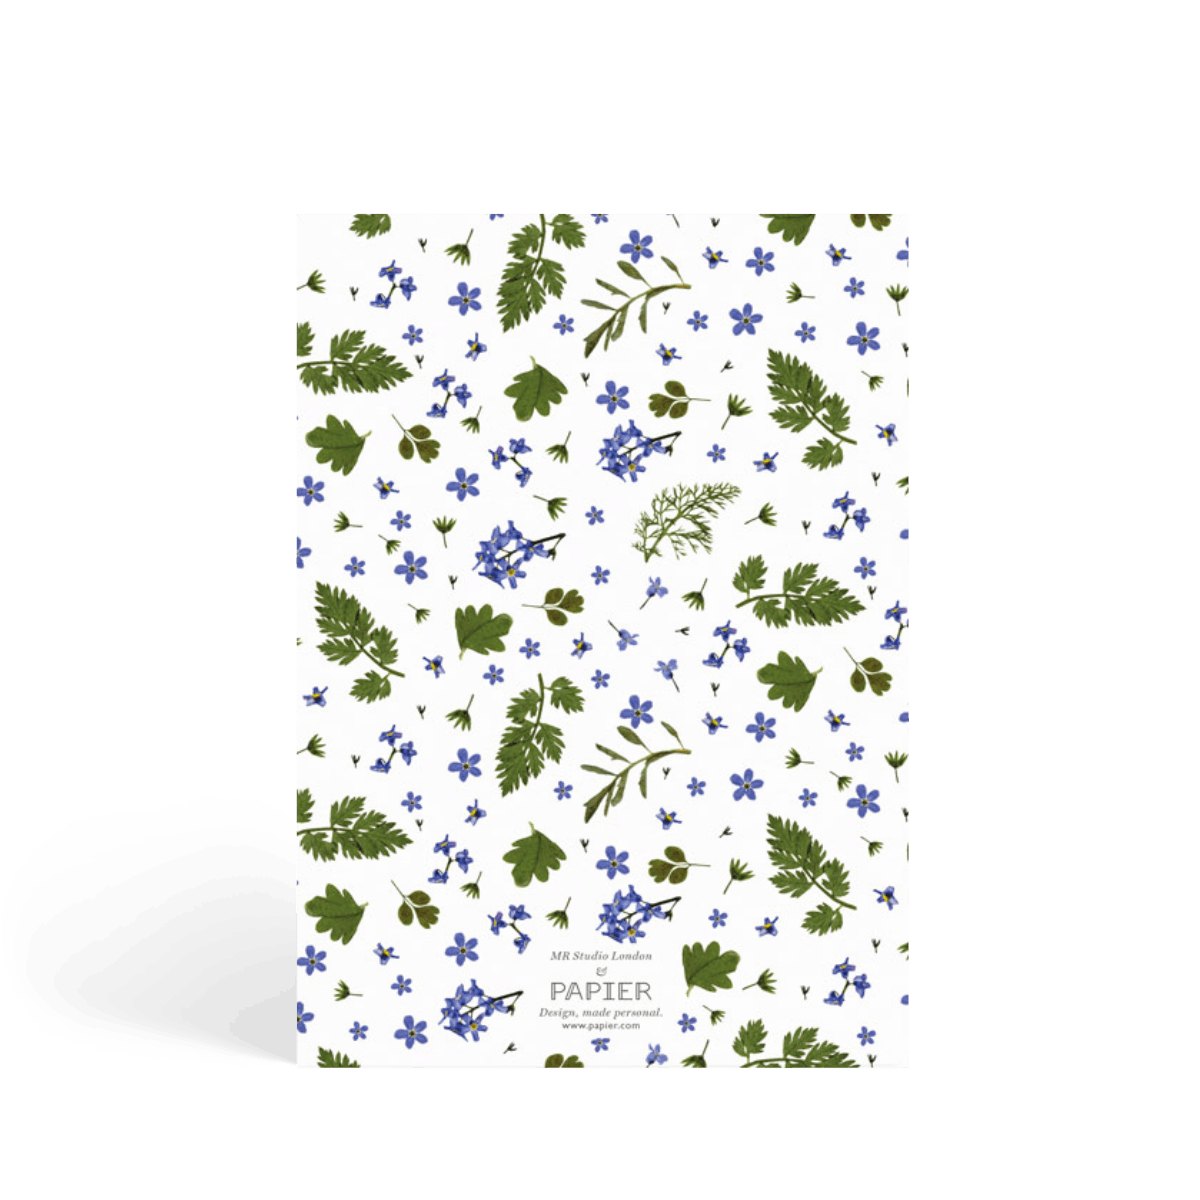 Https%3a%2f%2fwww.papier.com%2fproduct image%2f47952%2f5%2fblue meadow 11749 arriere 1539087366.png?ixlib=rb 1.1